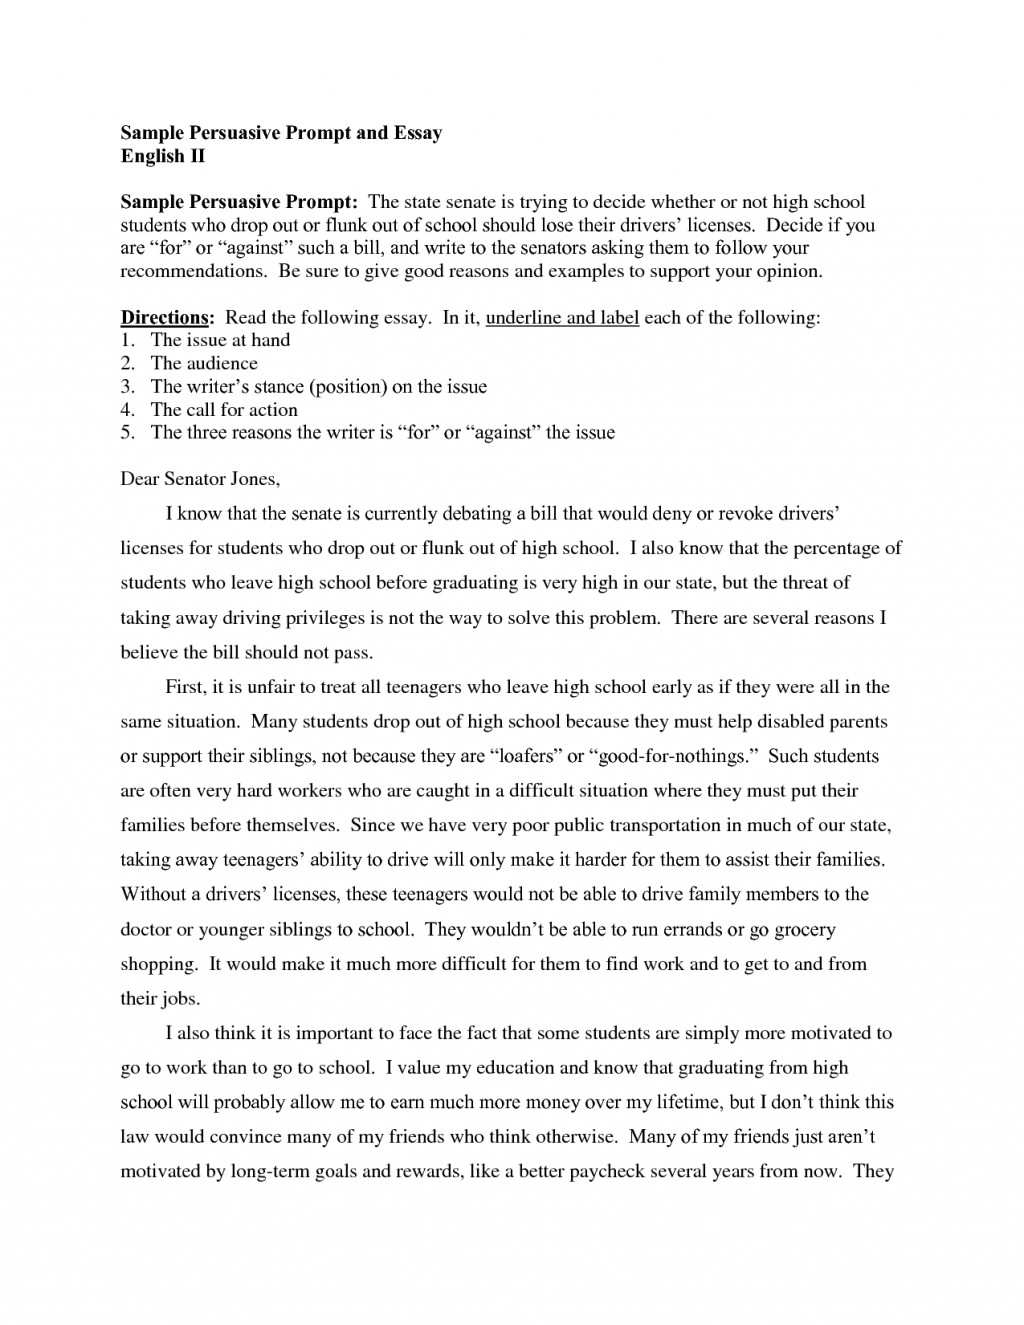 013 Persuasive Essay Example High School Writings And Essays Examples Samples For Onwe Bioinnovat 5th Grade Lockers Everyone Answers Pdf Middle 6th About Love Writing Prompts Exceptional A Thesis Statement Argumentative Ppt 4th Large